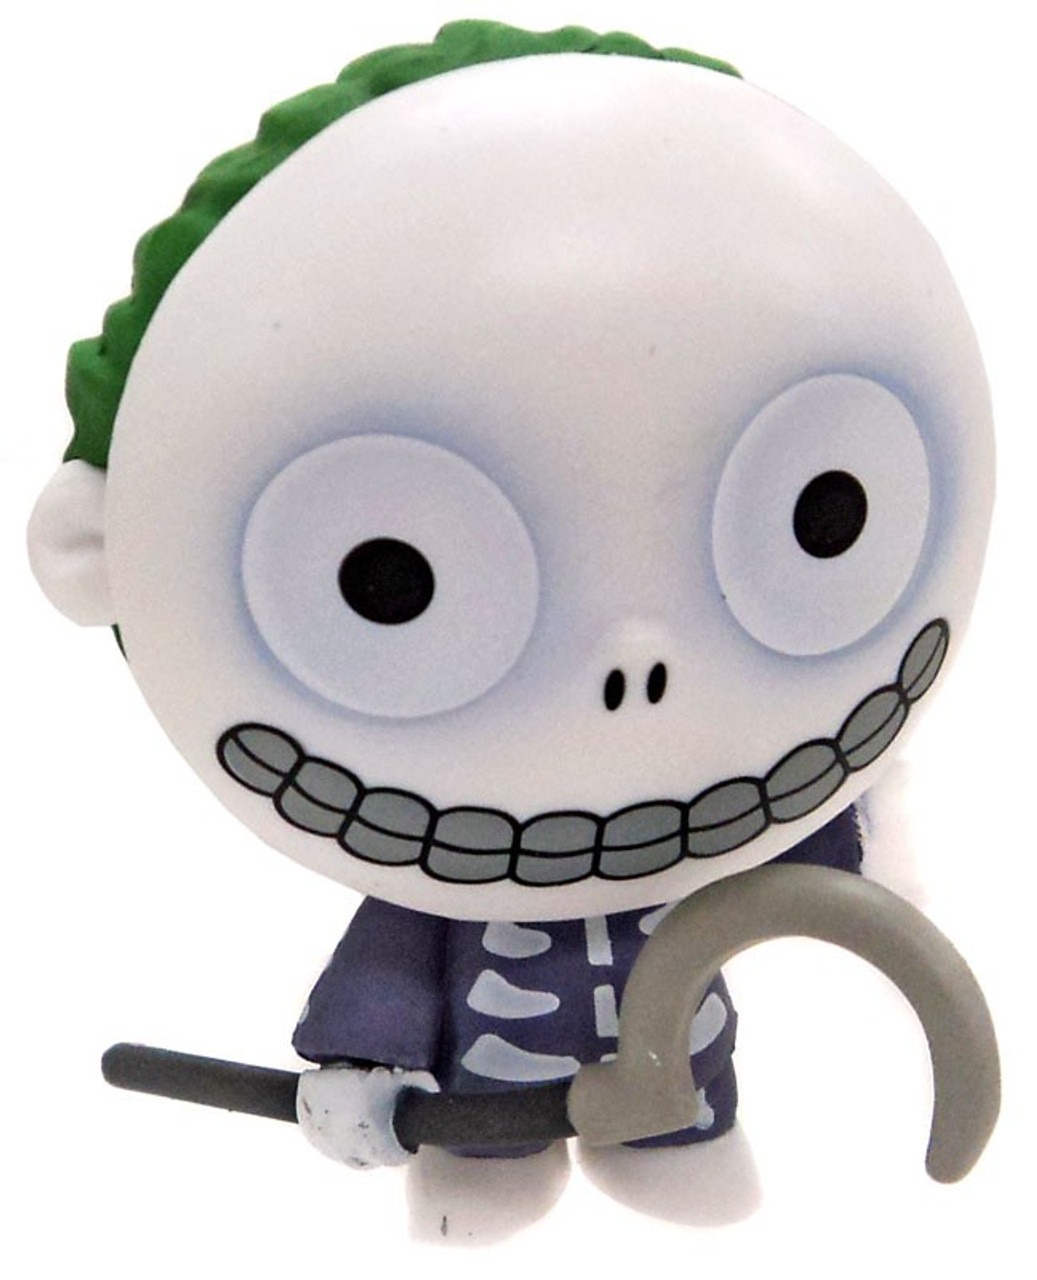 funko nightmare before christmas 25th anniversary barrel 112 mystery minifigure loose - Barrel Nightmare Before Christmas